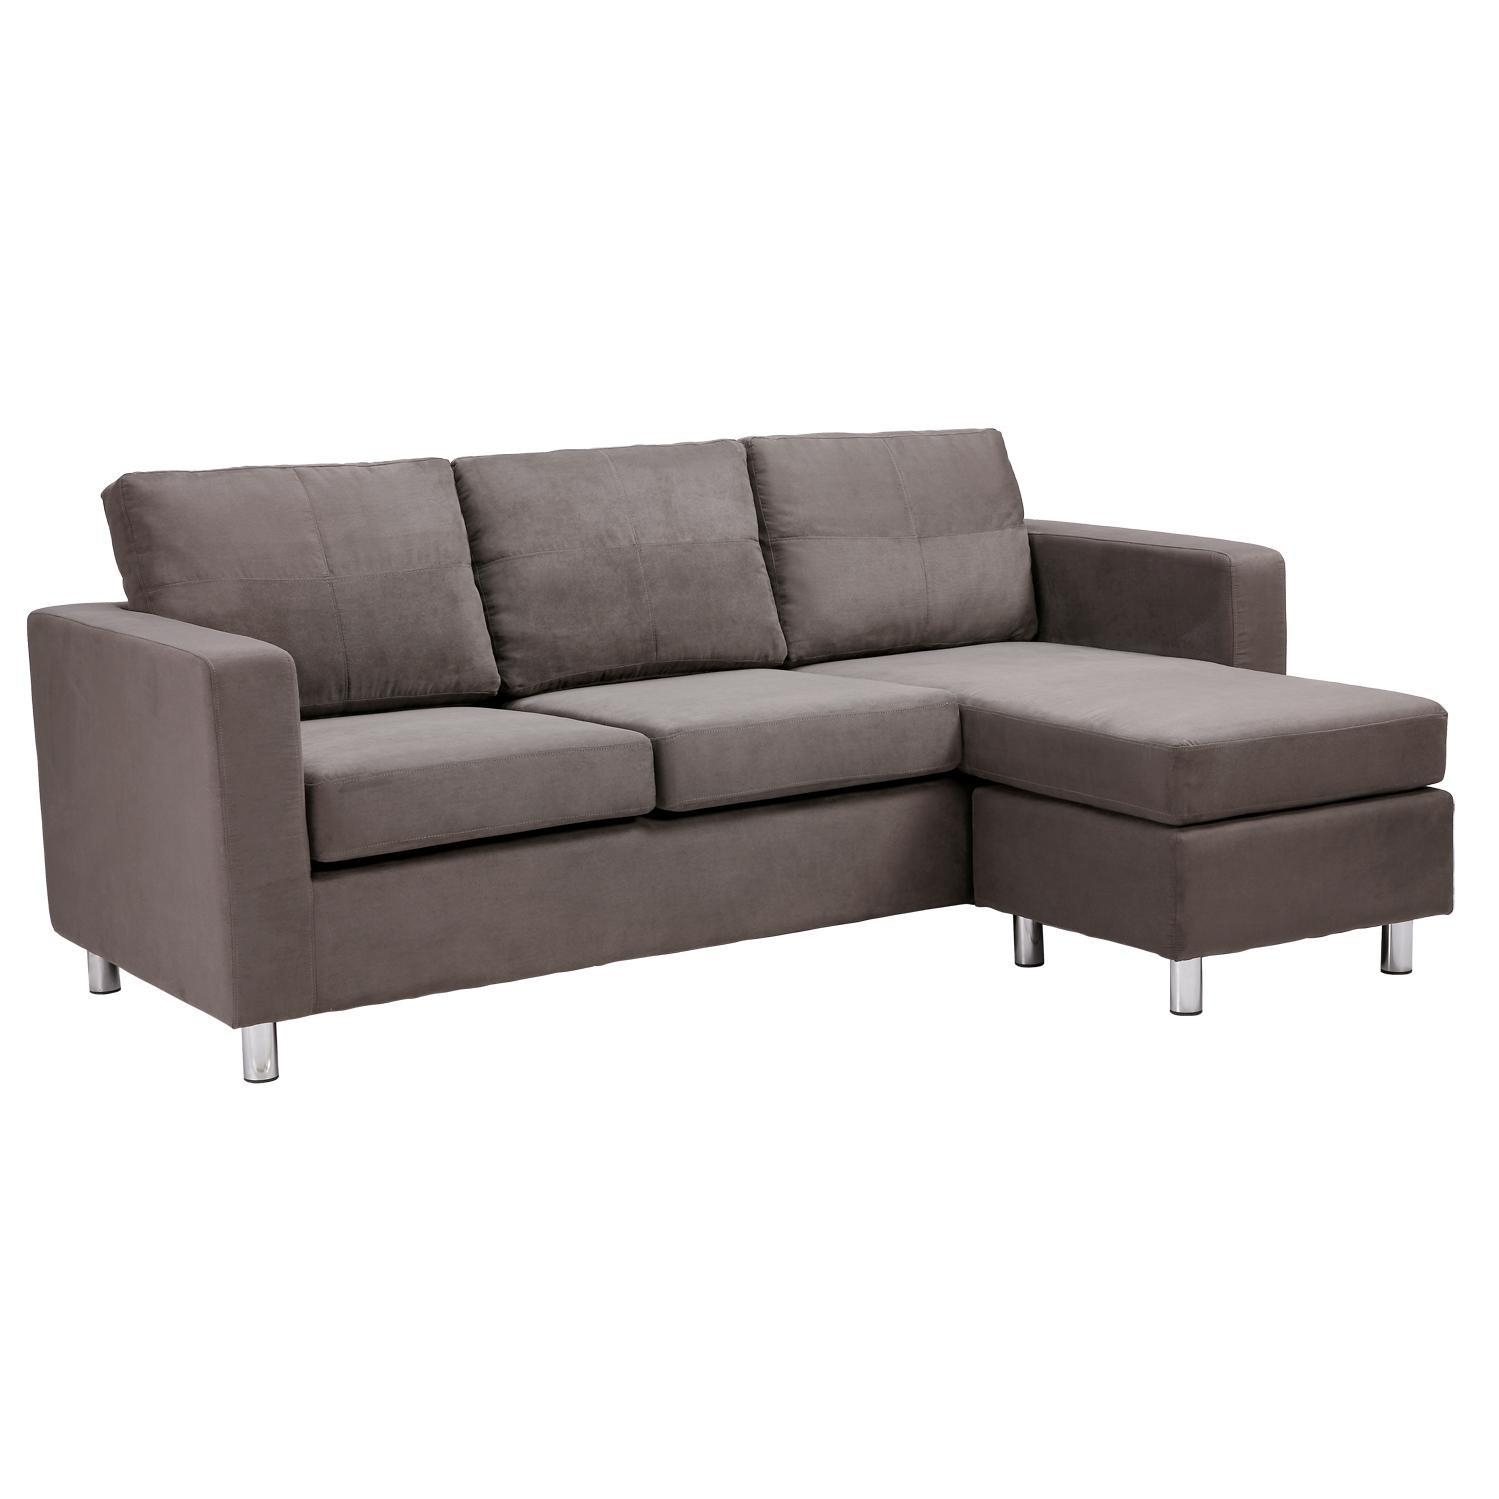 Small Sectional Couch (Image 12 of 20)